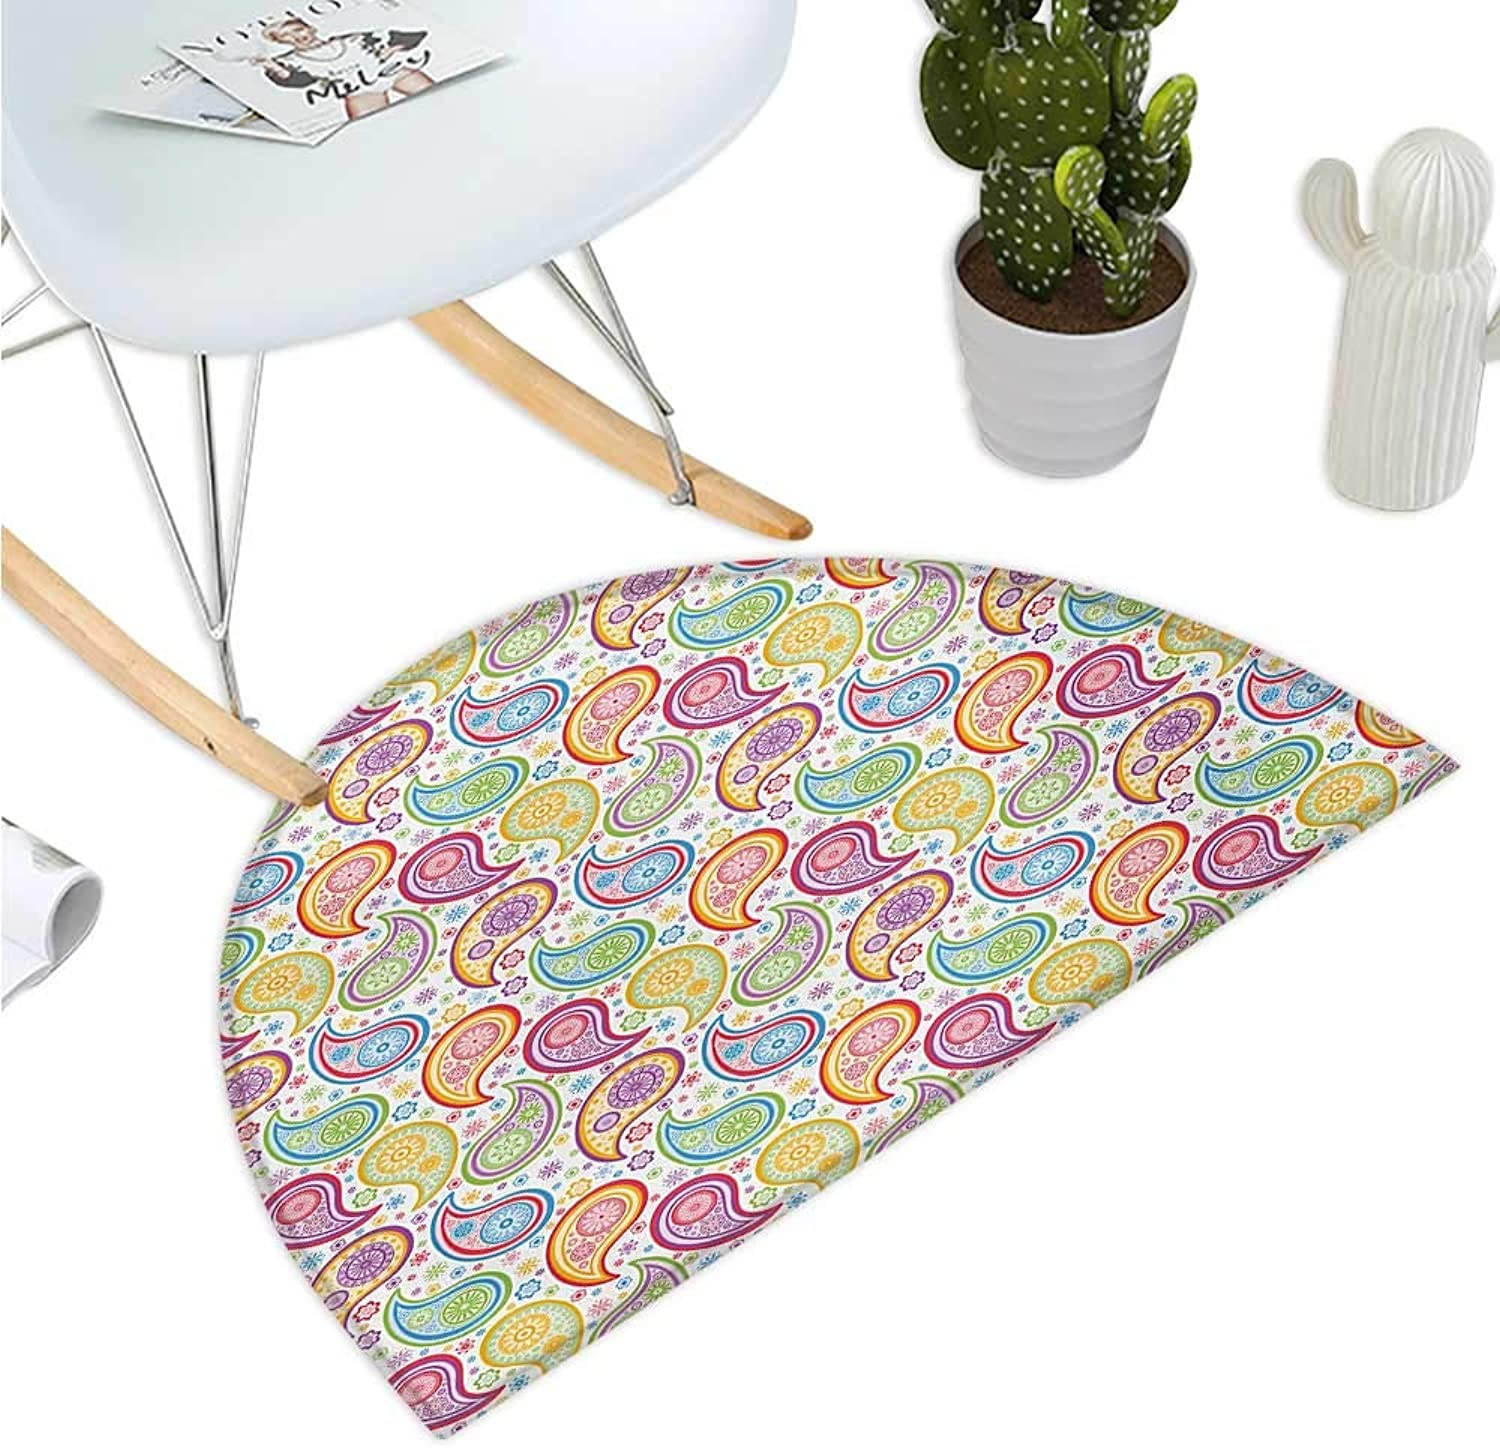 Paisley Semicircular Cushion colord Patterned Backgrounded with Old Paisley Flowers and Circles Artwork Entry Door Mat H 35.4  xD 53.1  Multi colord